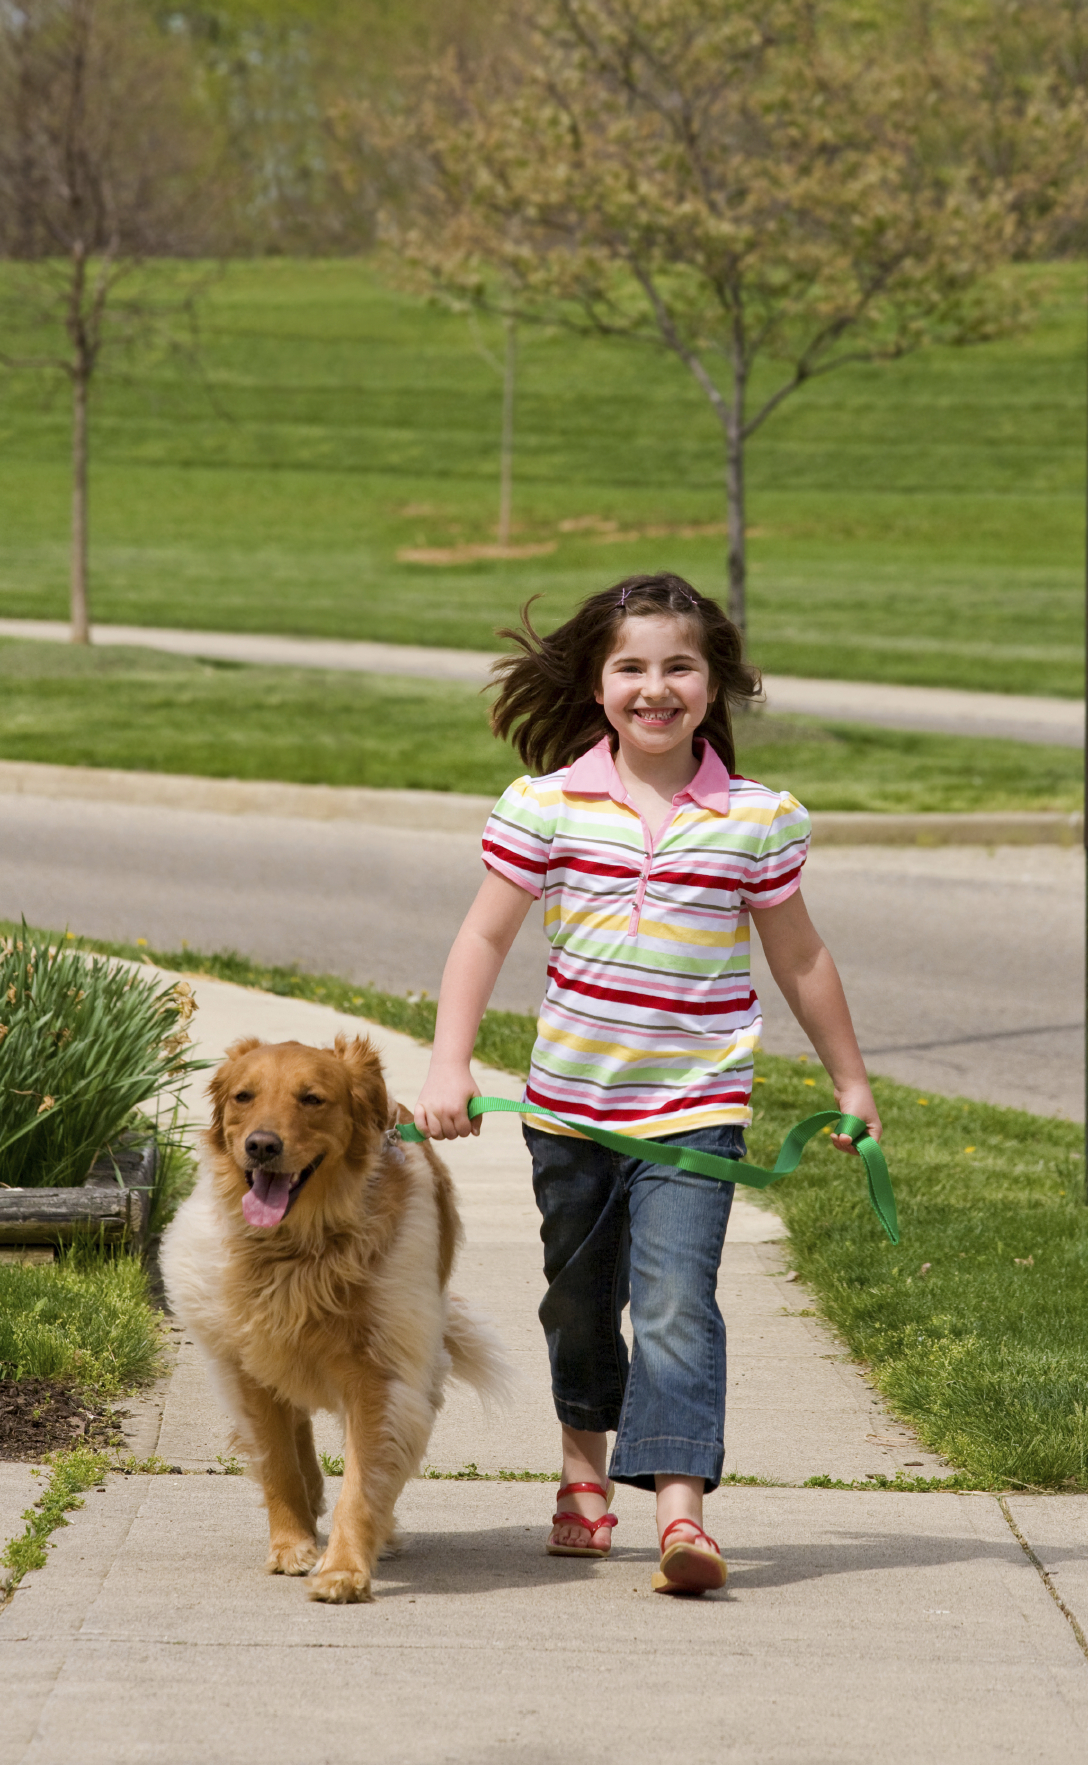 Little Girl Walking Dog - Stock Image